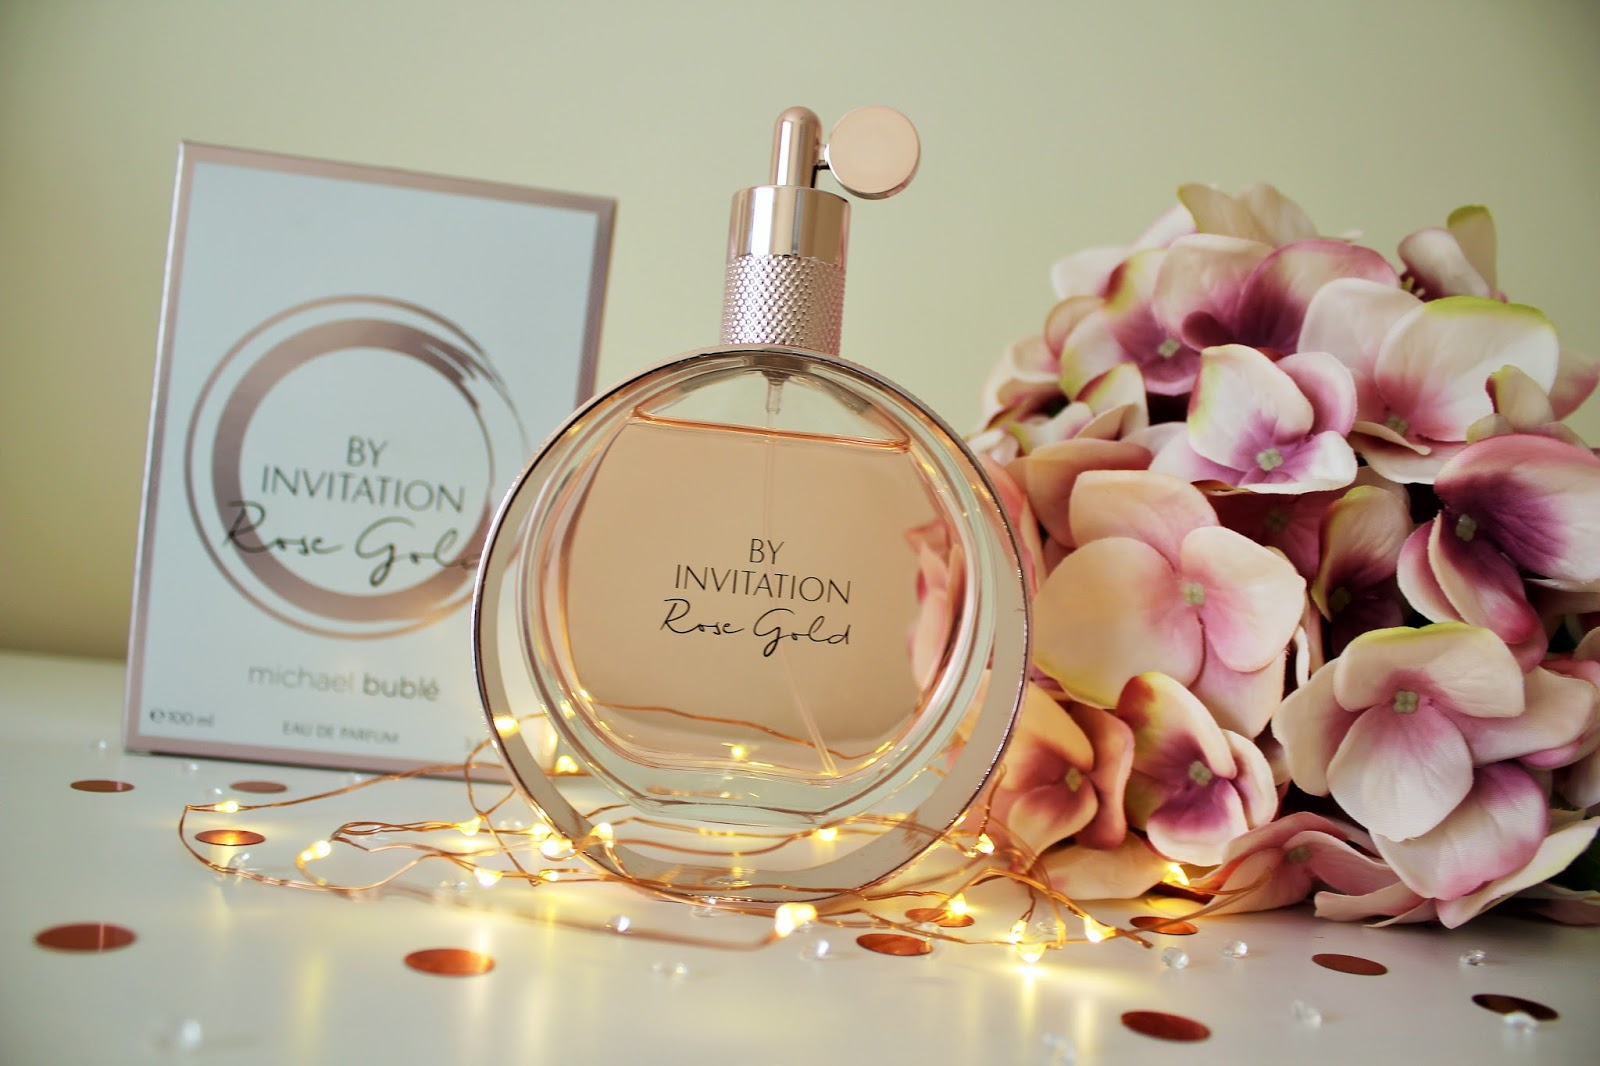 Michael Buble By Invitation Rose Gold Perfume Review - 1